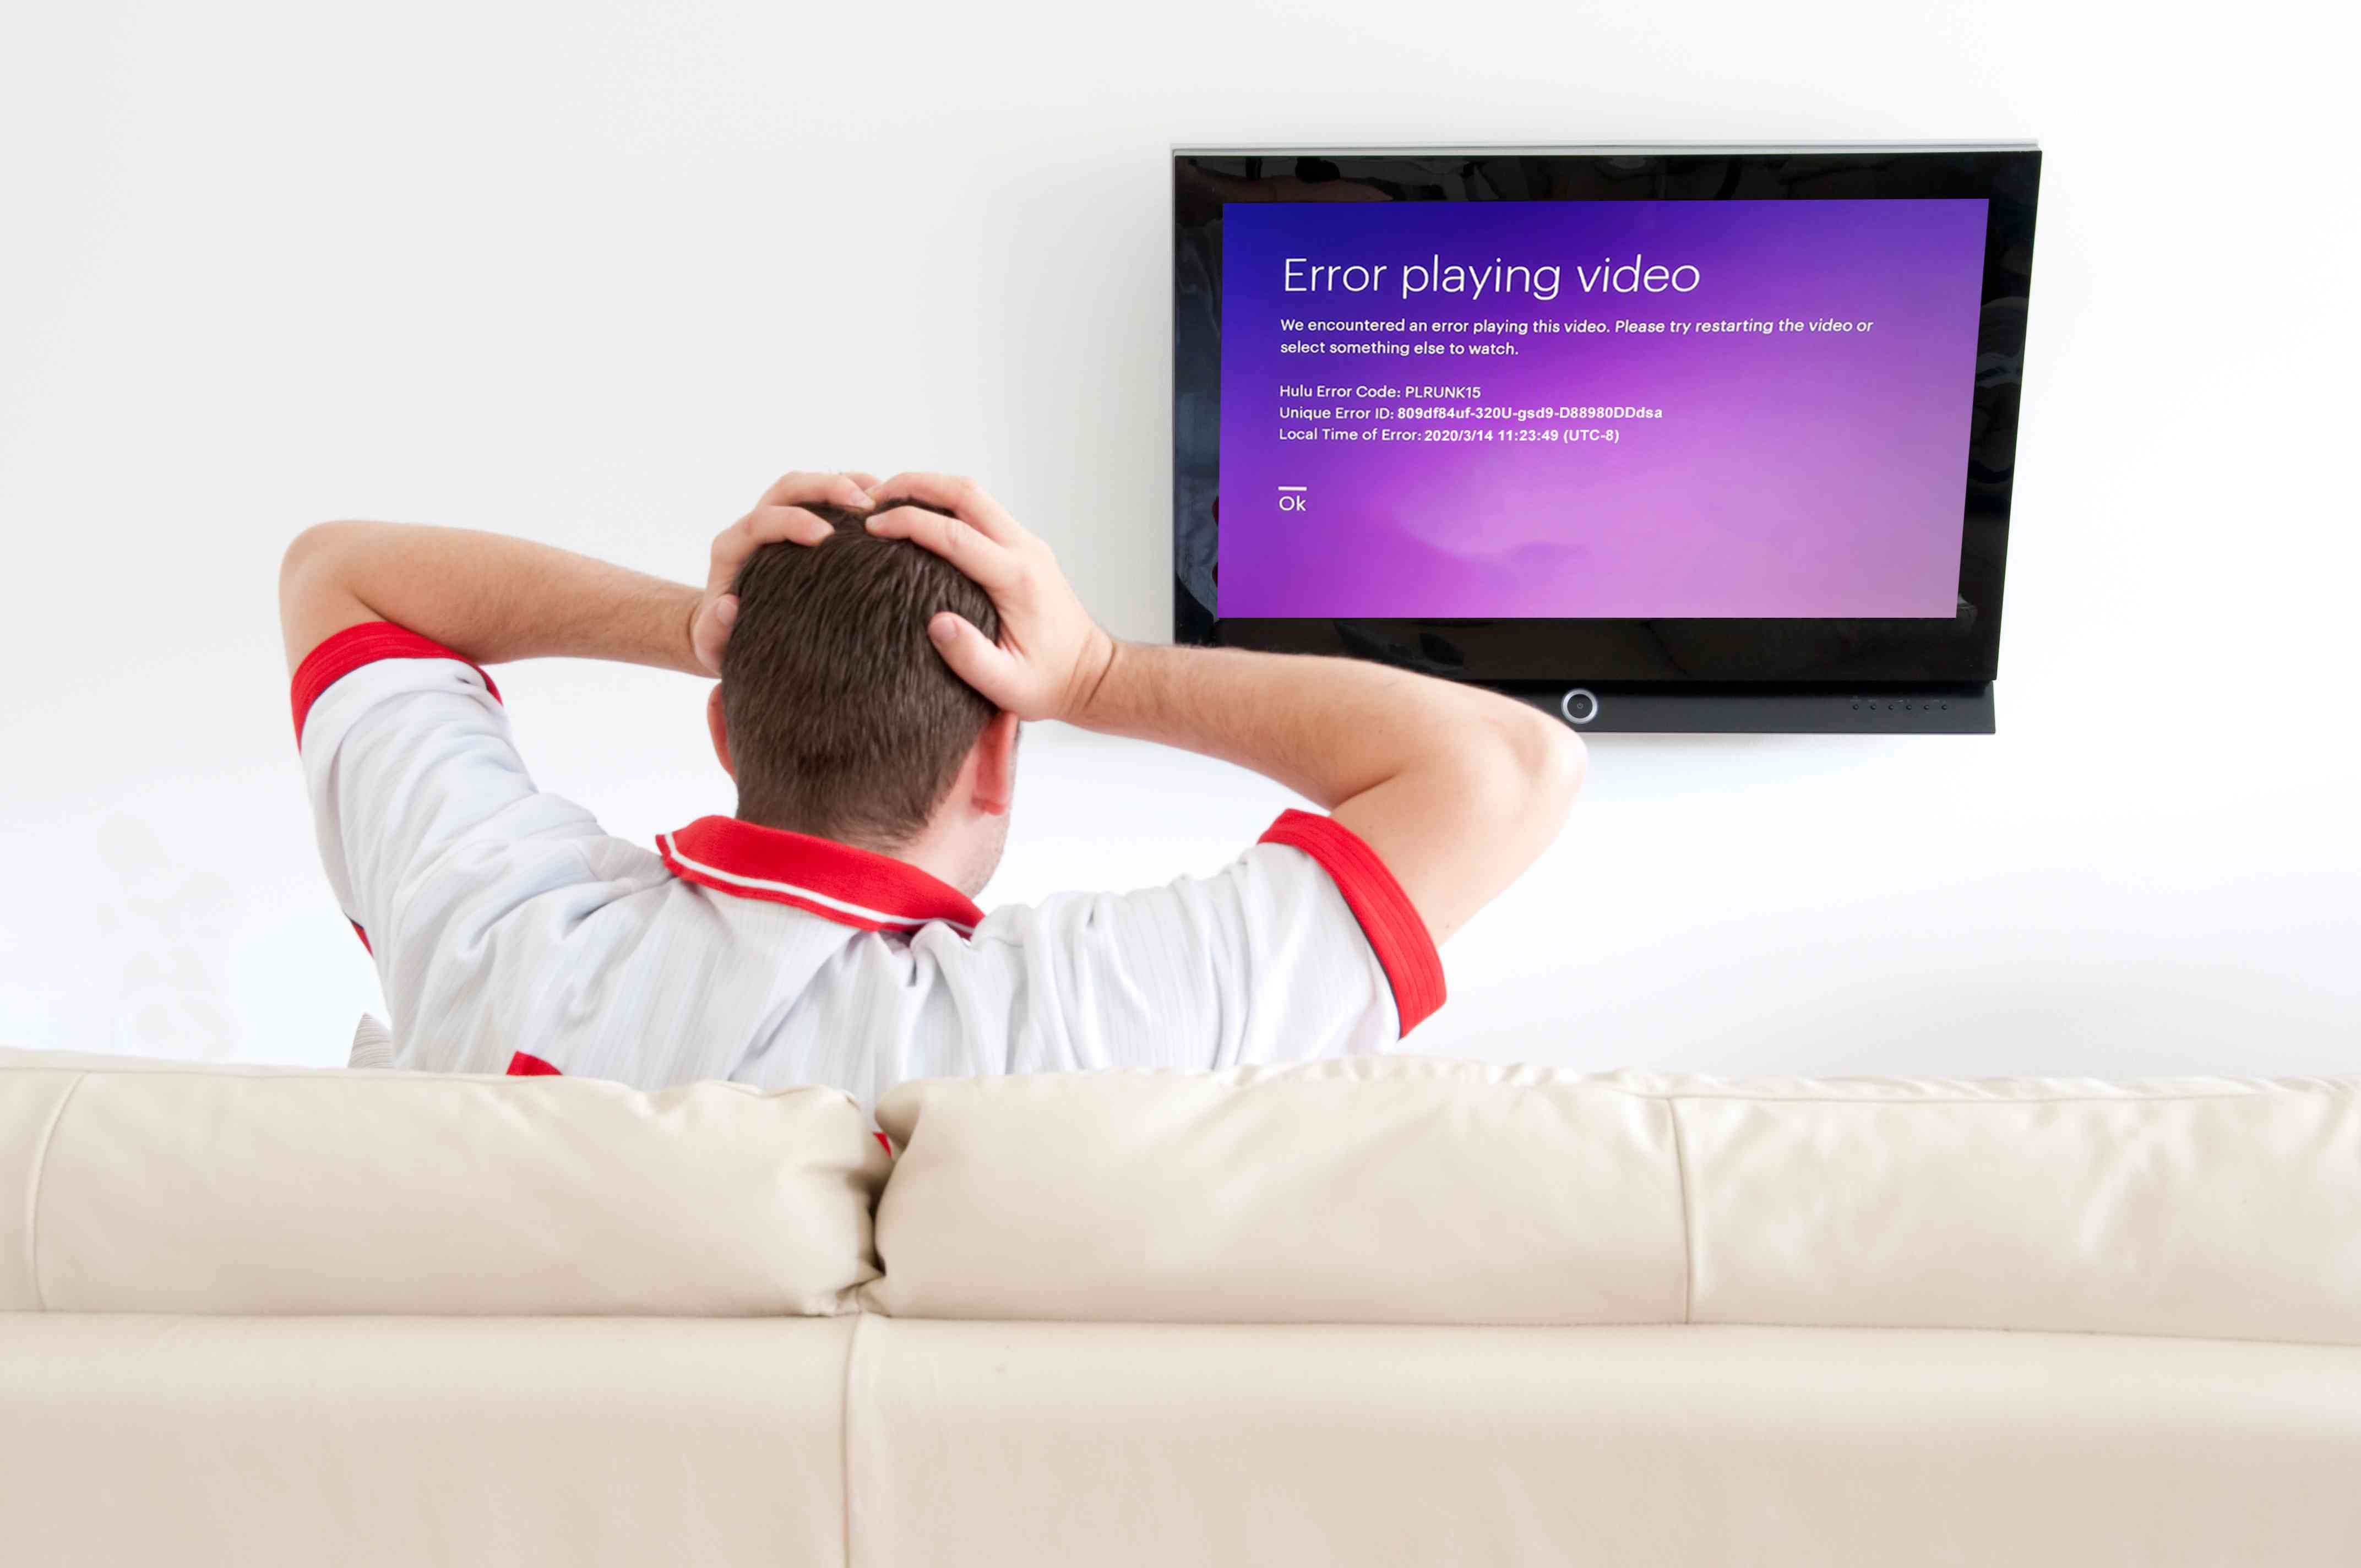 Hulu error code PLRUNK15 appears on a frustrated man's television.